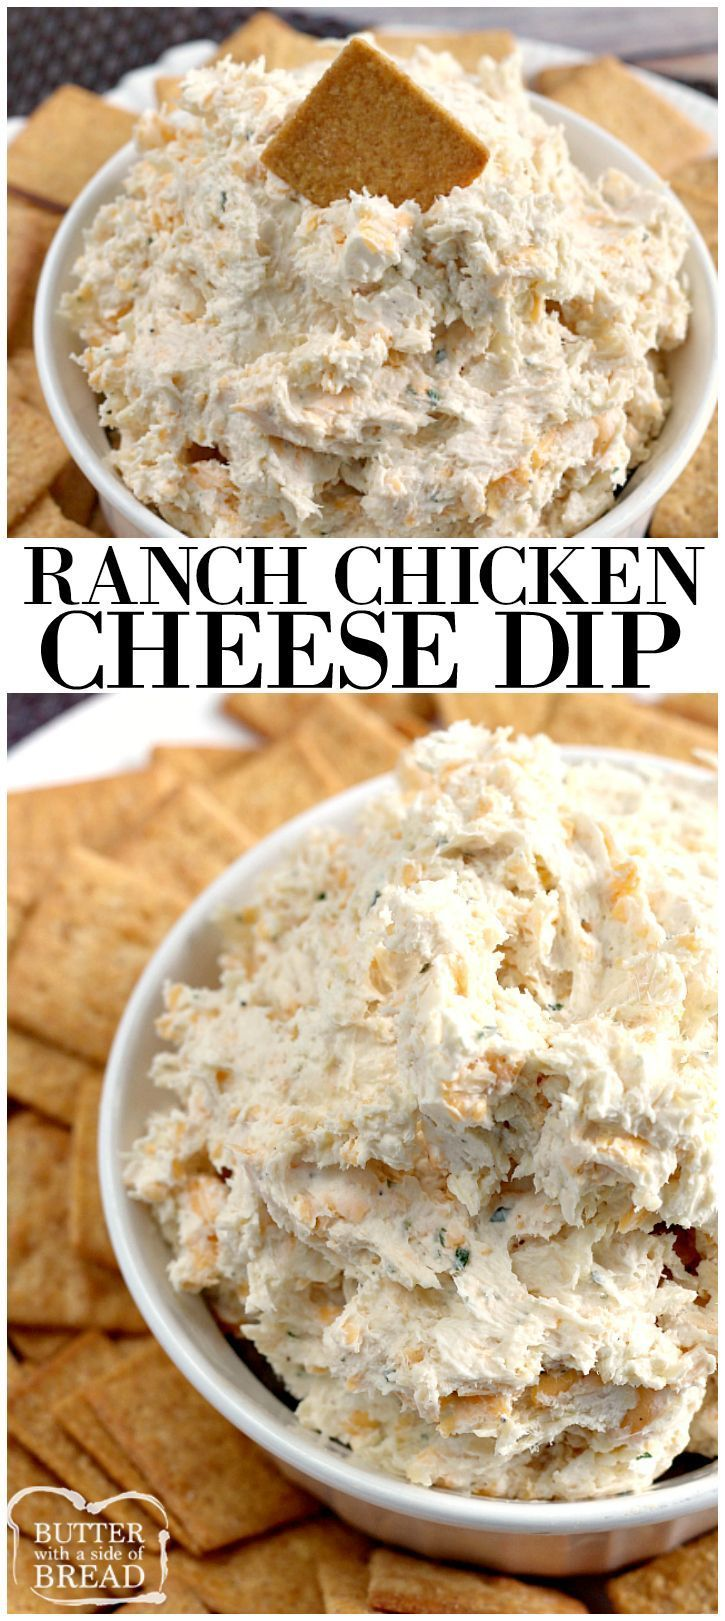 Ranch Chicken Cheese dip will knock your socks off! Only four basic ingredients …